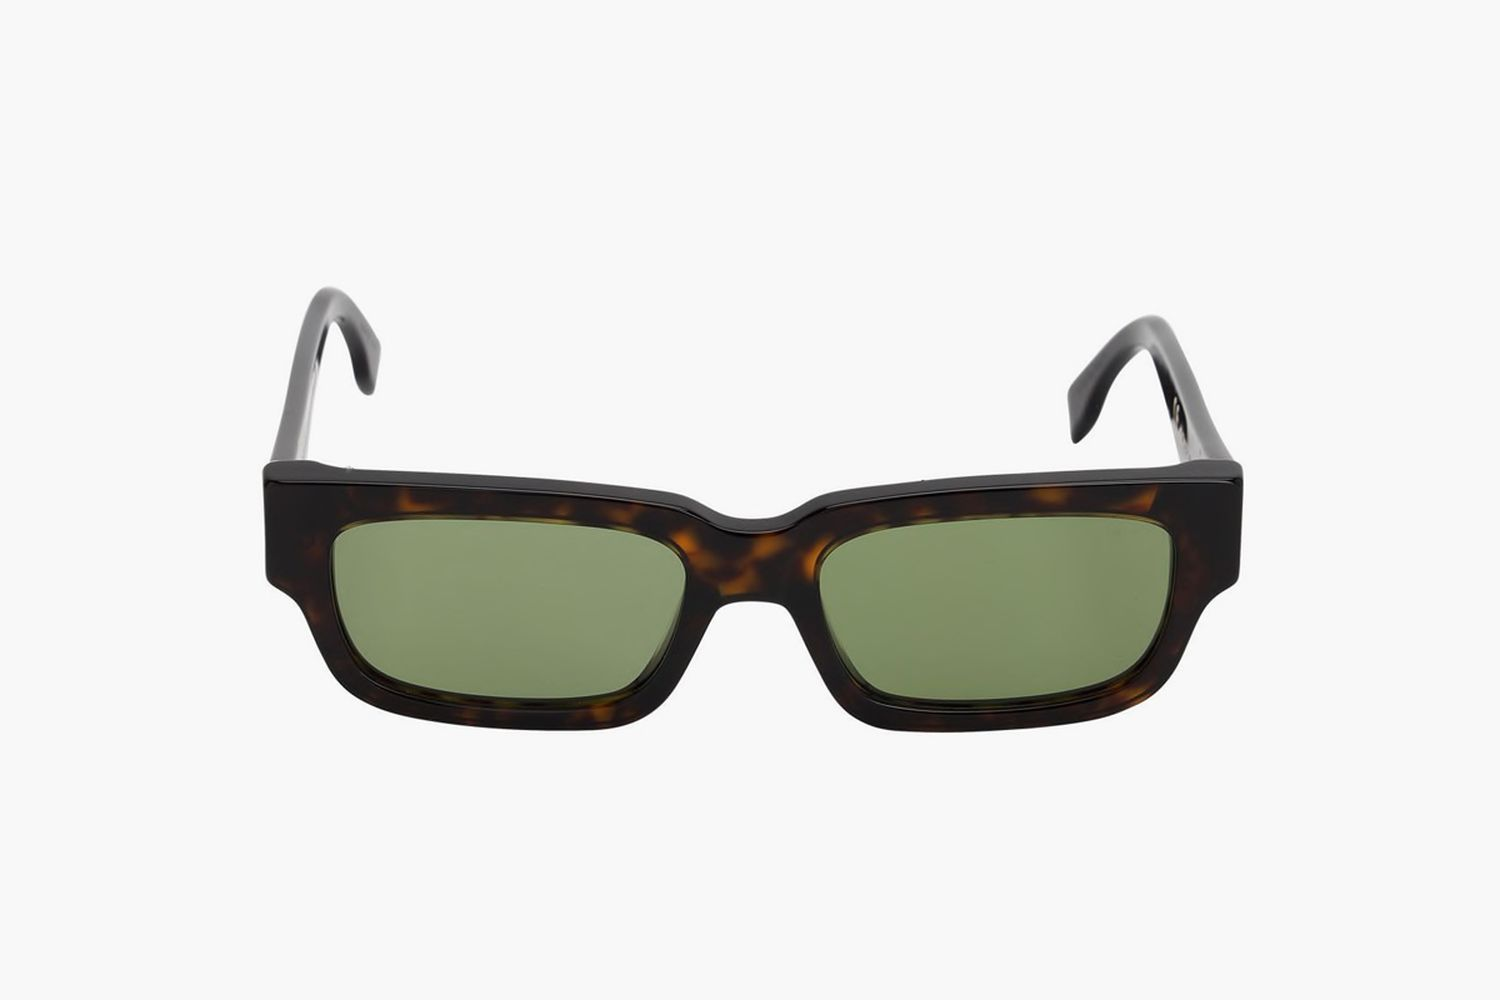 Roma 3627 Acetate Sunglasses